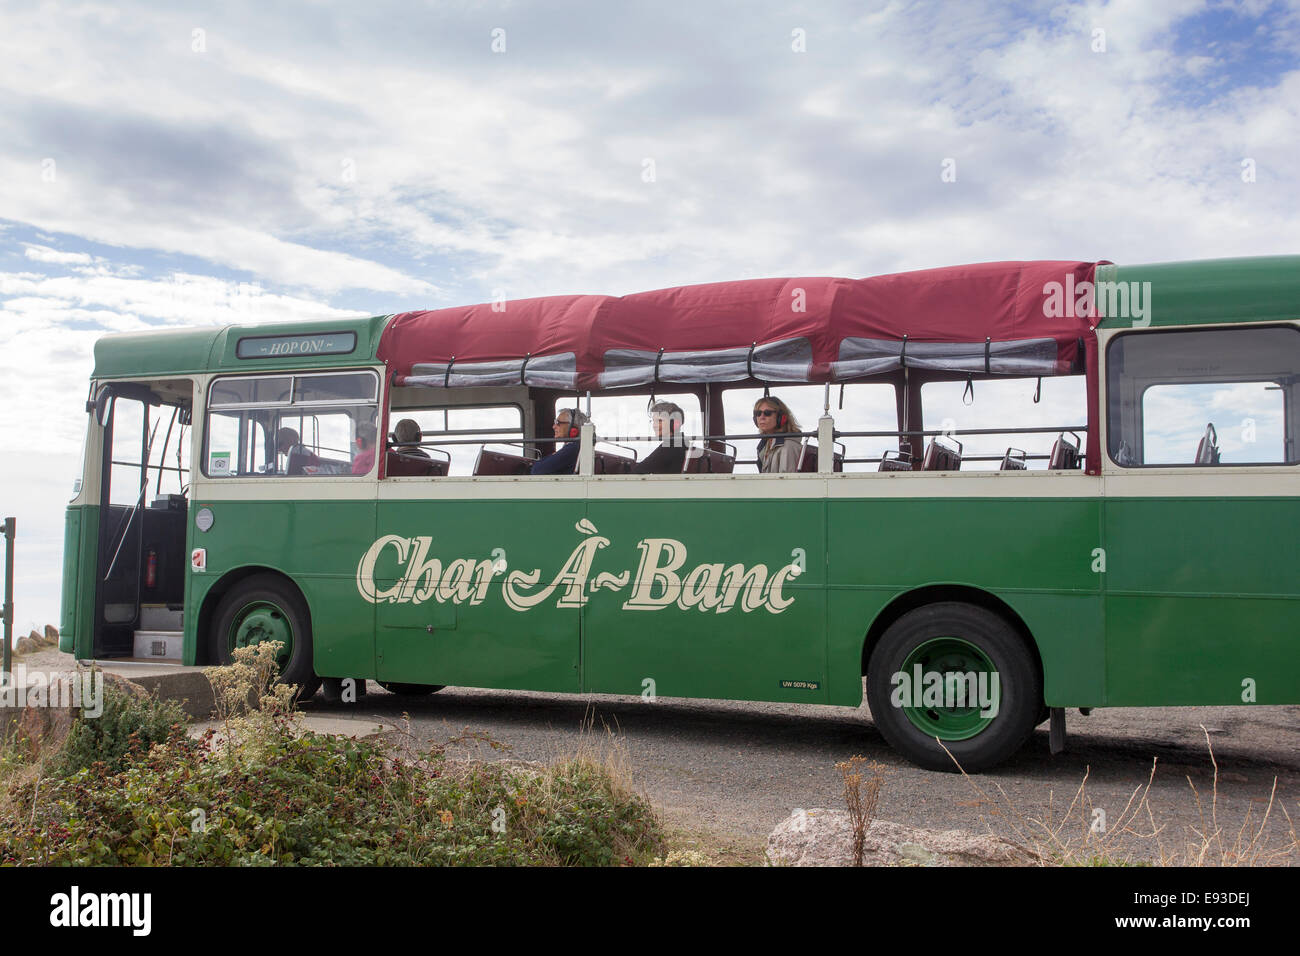 char a banc tour bus jersey channel islands char banc island coach stock photo 74449834 alamy. Black Bedroom Furniture Sets. Home Design Ideas